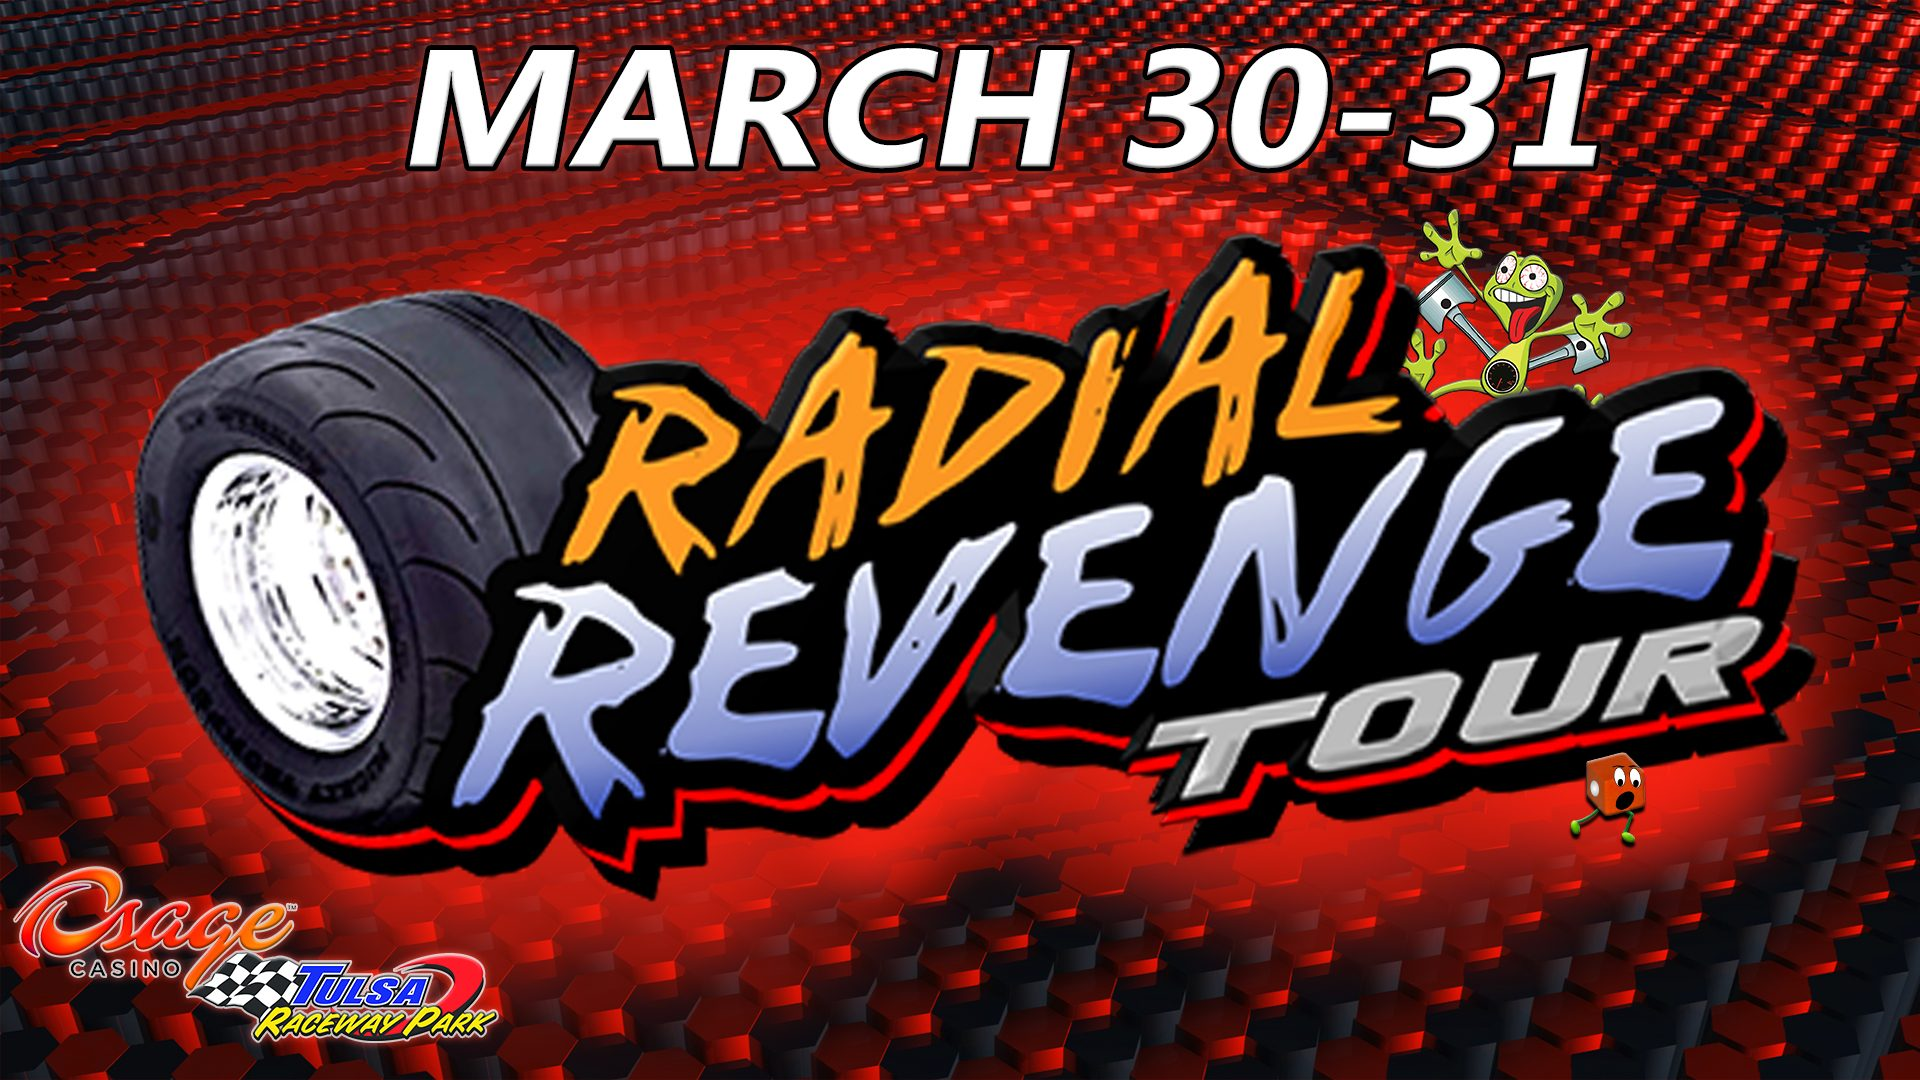 March30-31_RadialRevenge_Wps3